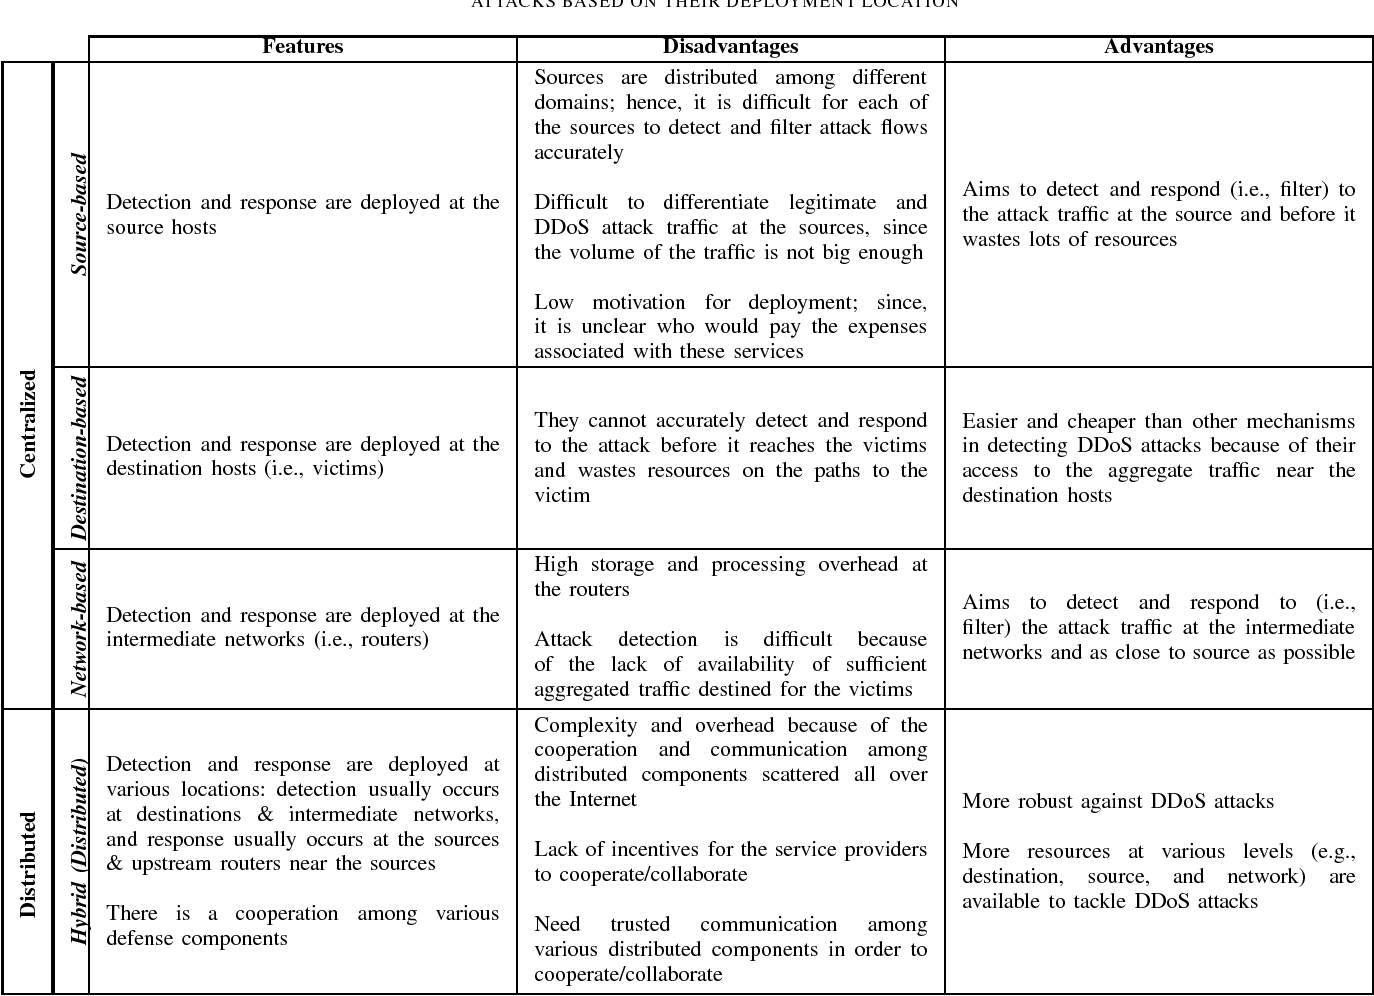 Table I from A Survey of Defense Mechanisms Against